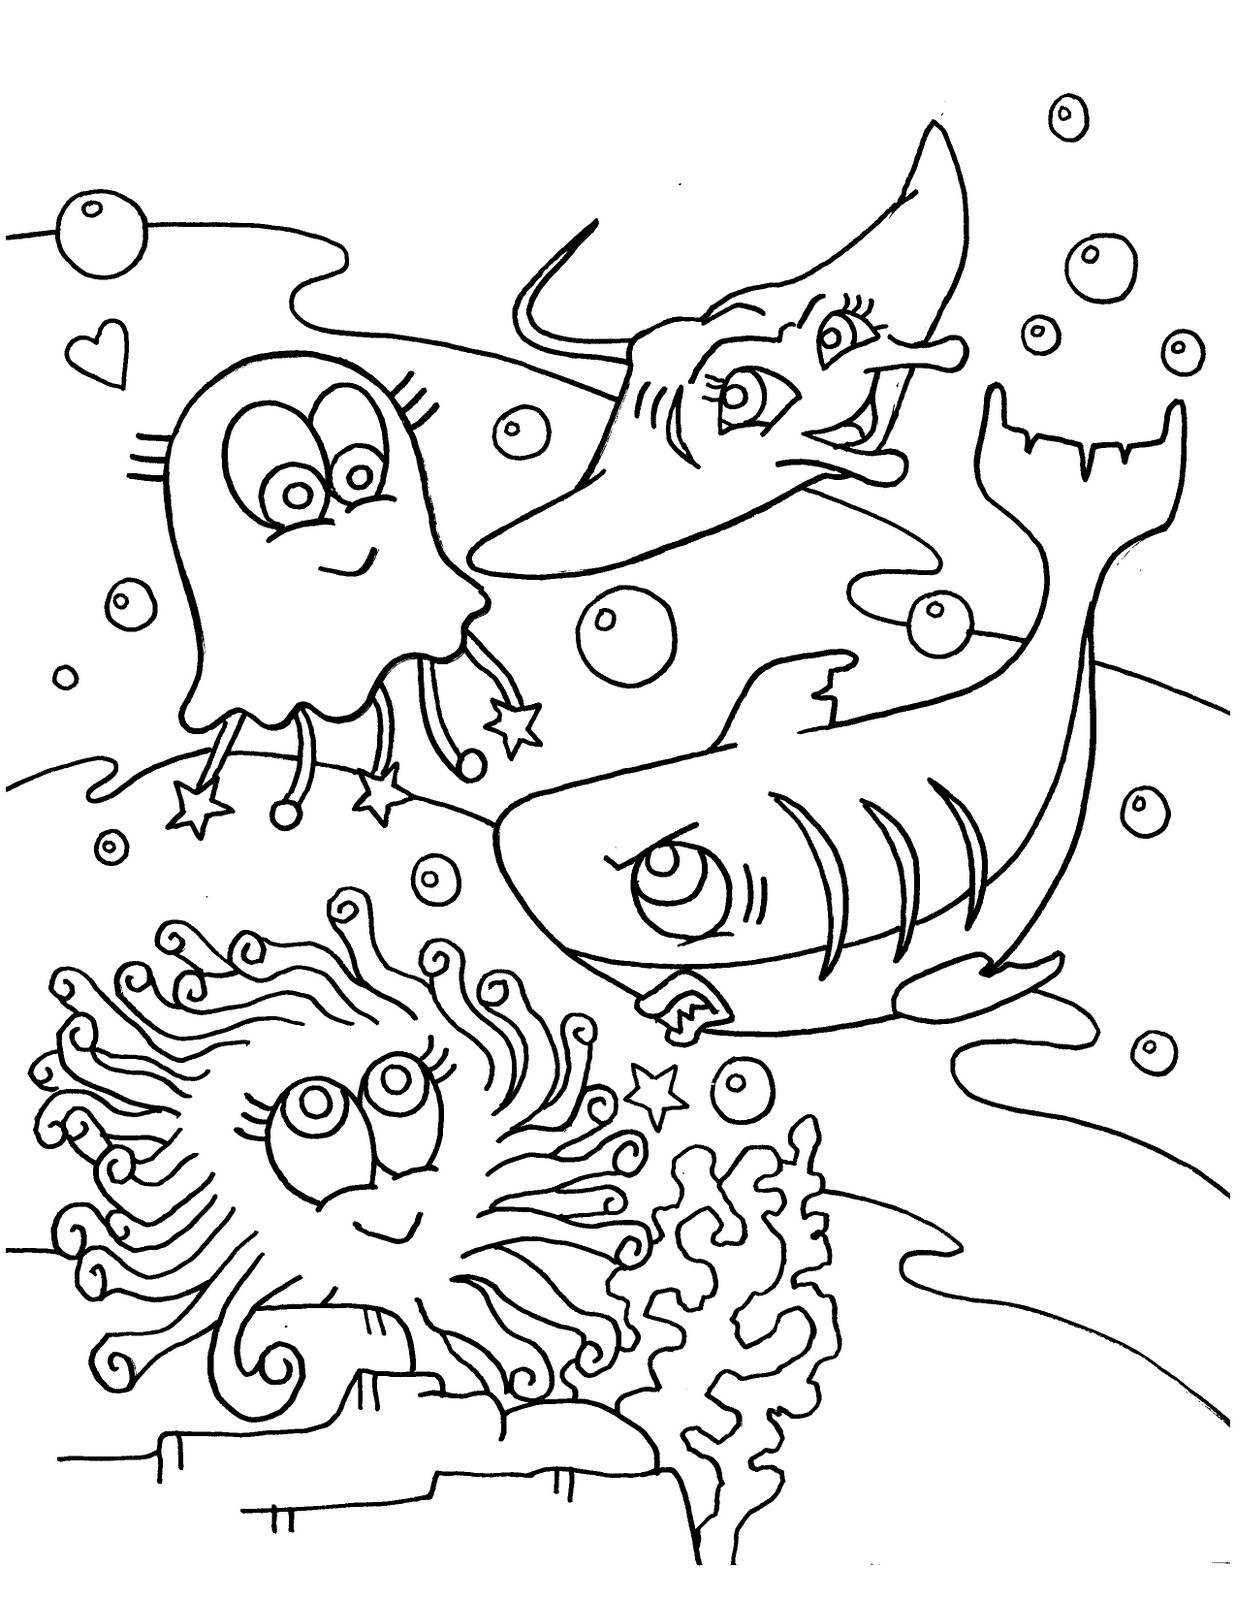 coloring page shark shark coloring pages getcoloringpagescom shark coloring page